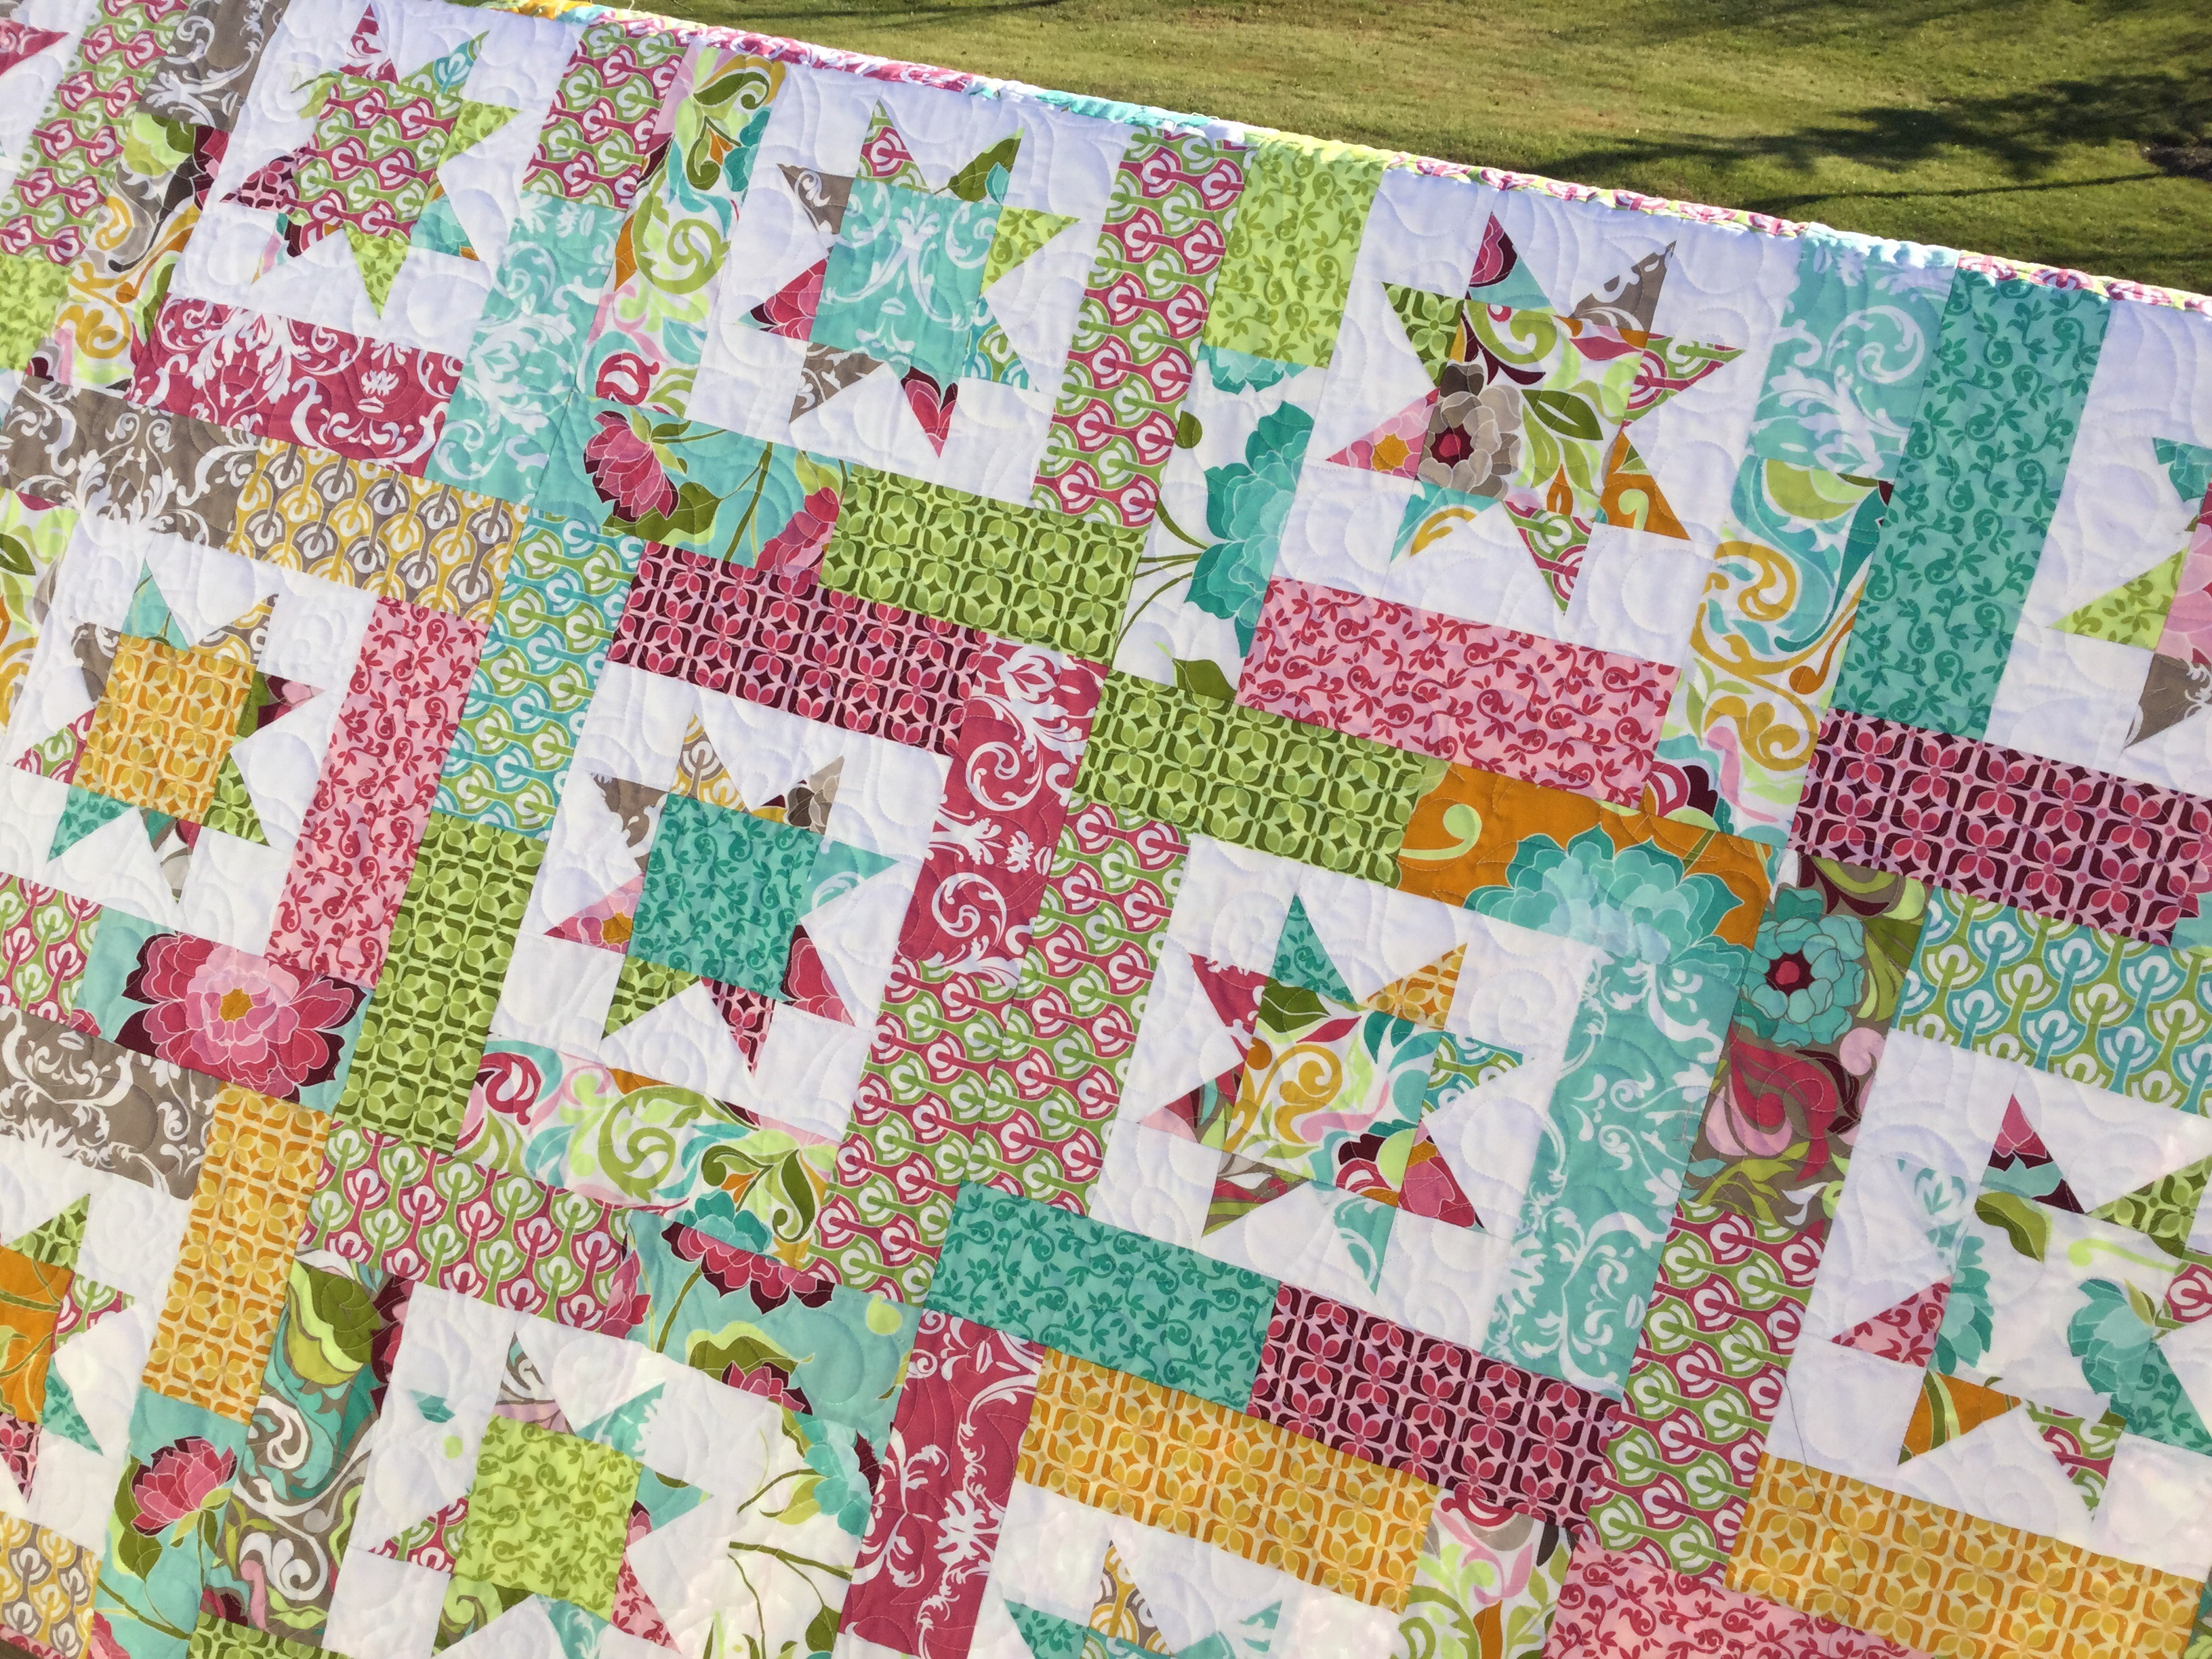 Simple Quilts Templates Quilt Kit : easy quilt kits SewMod